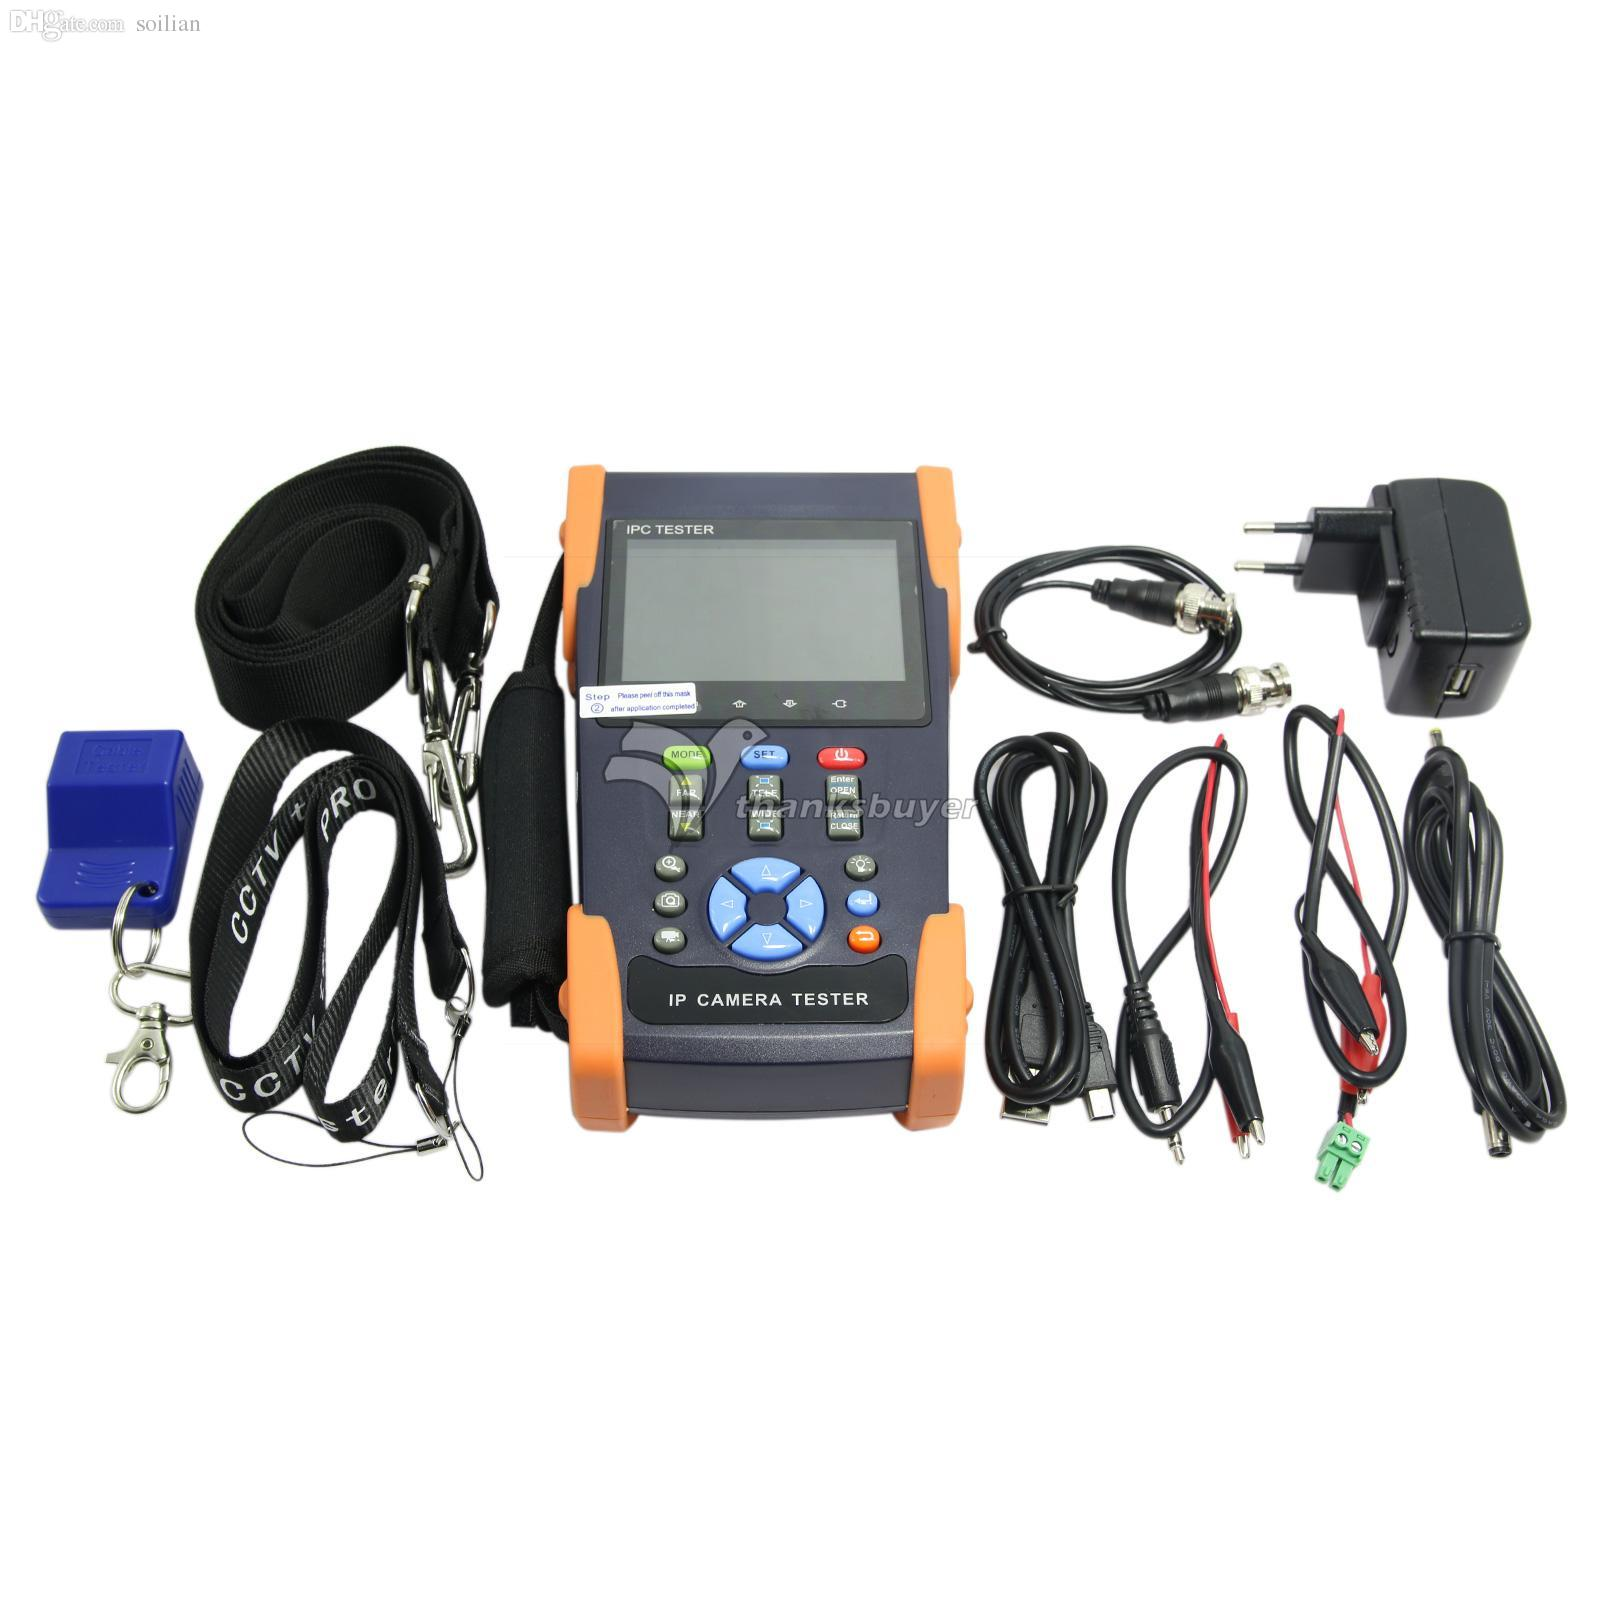 IPC-3500 3 5inch Touch Screen IP Camera CCTV Tester Support ONVIF Video  Recorder WIFI Multimeter TDR Cable Test